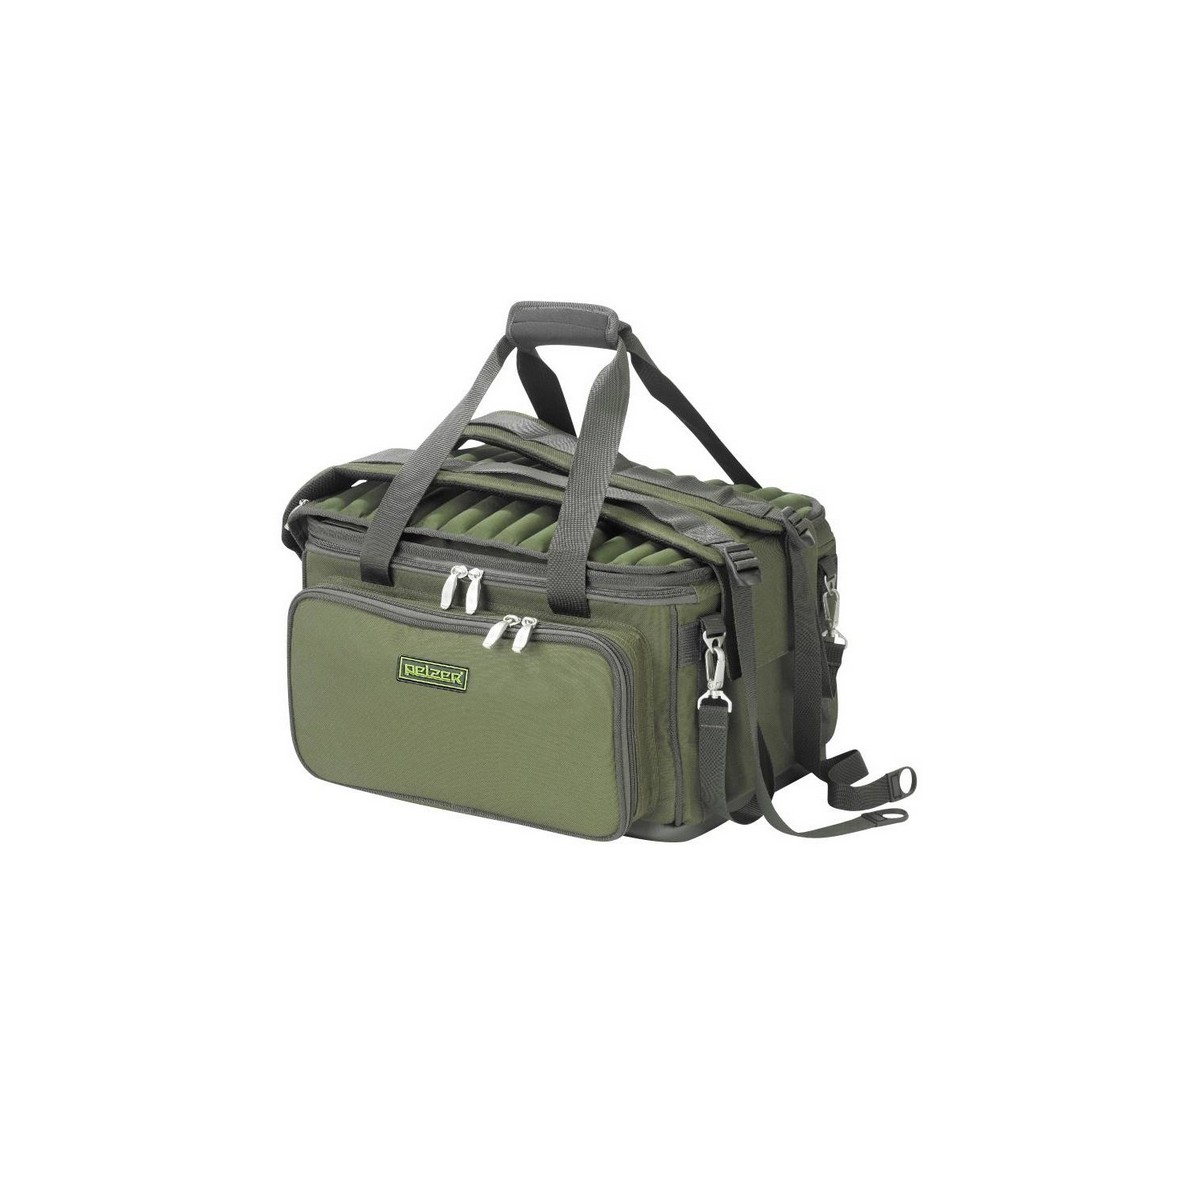 Сак-раница Pelzer Back Pack Carry All 1